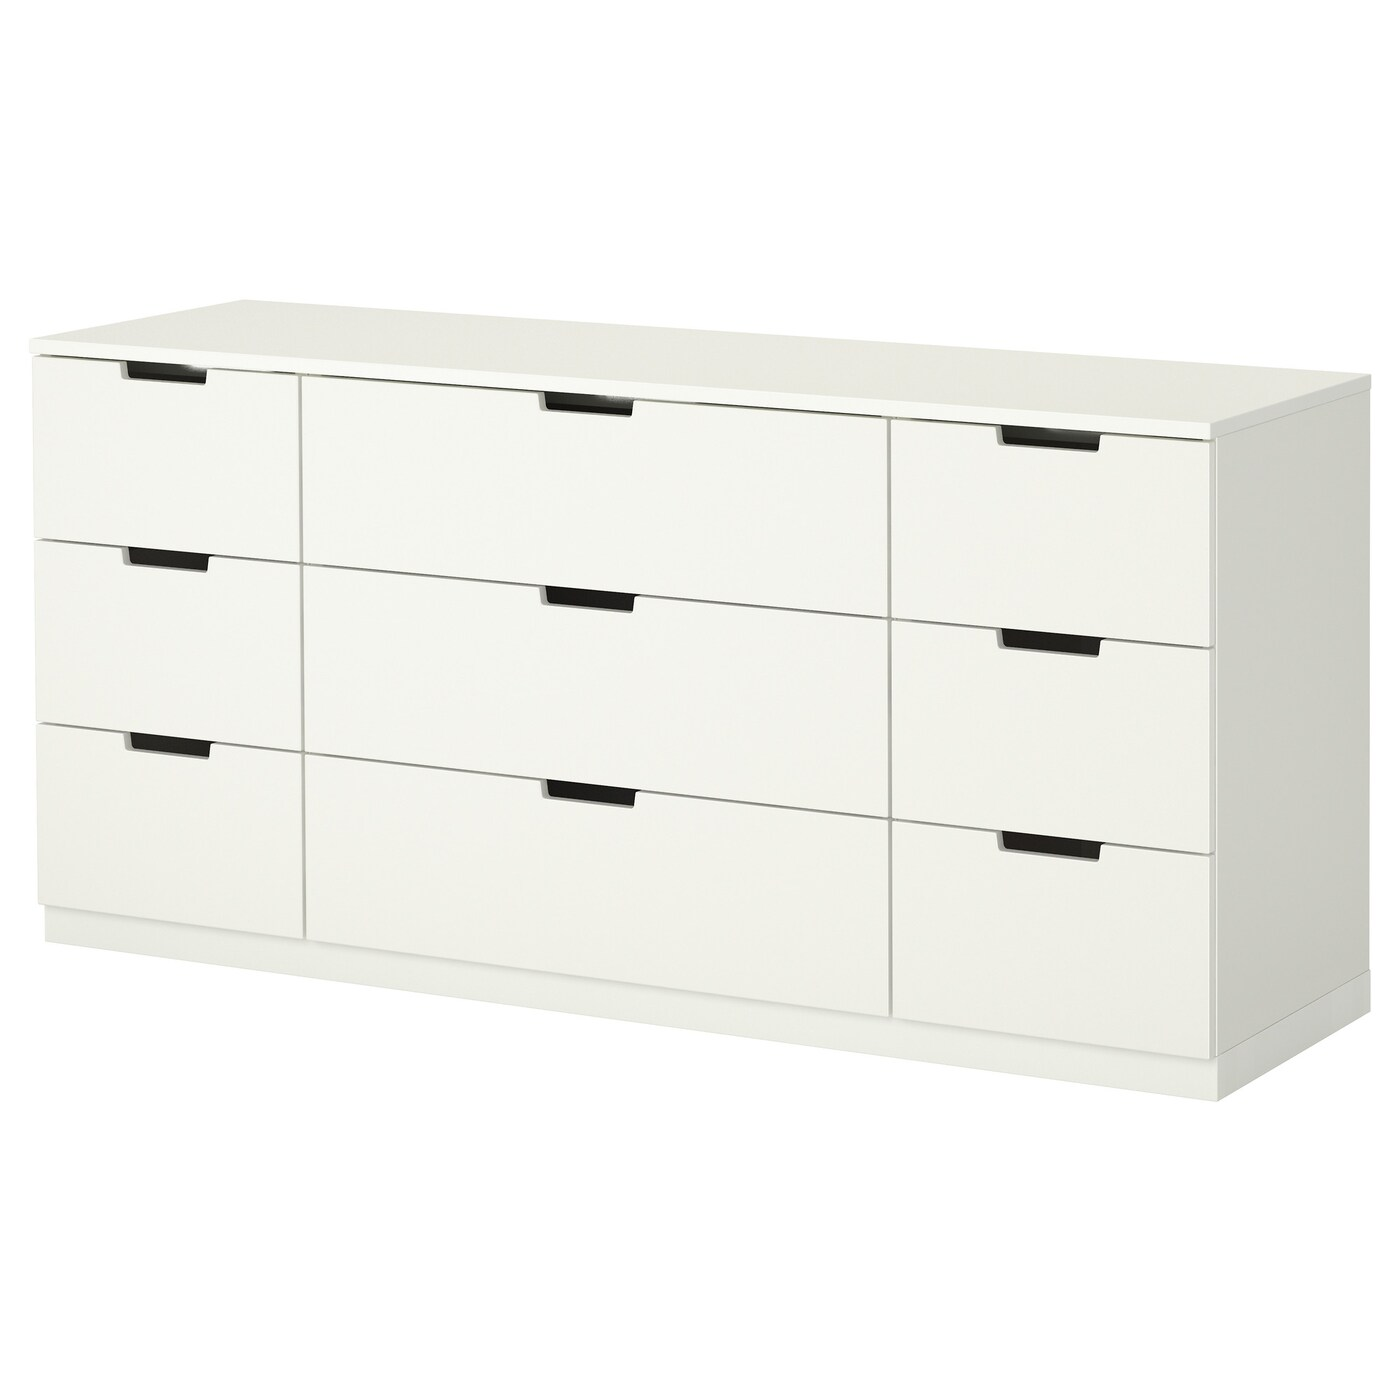 Ikea Nordli Chest Of 9 Drawers